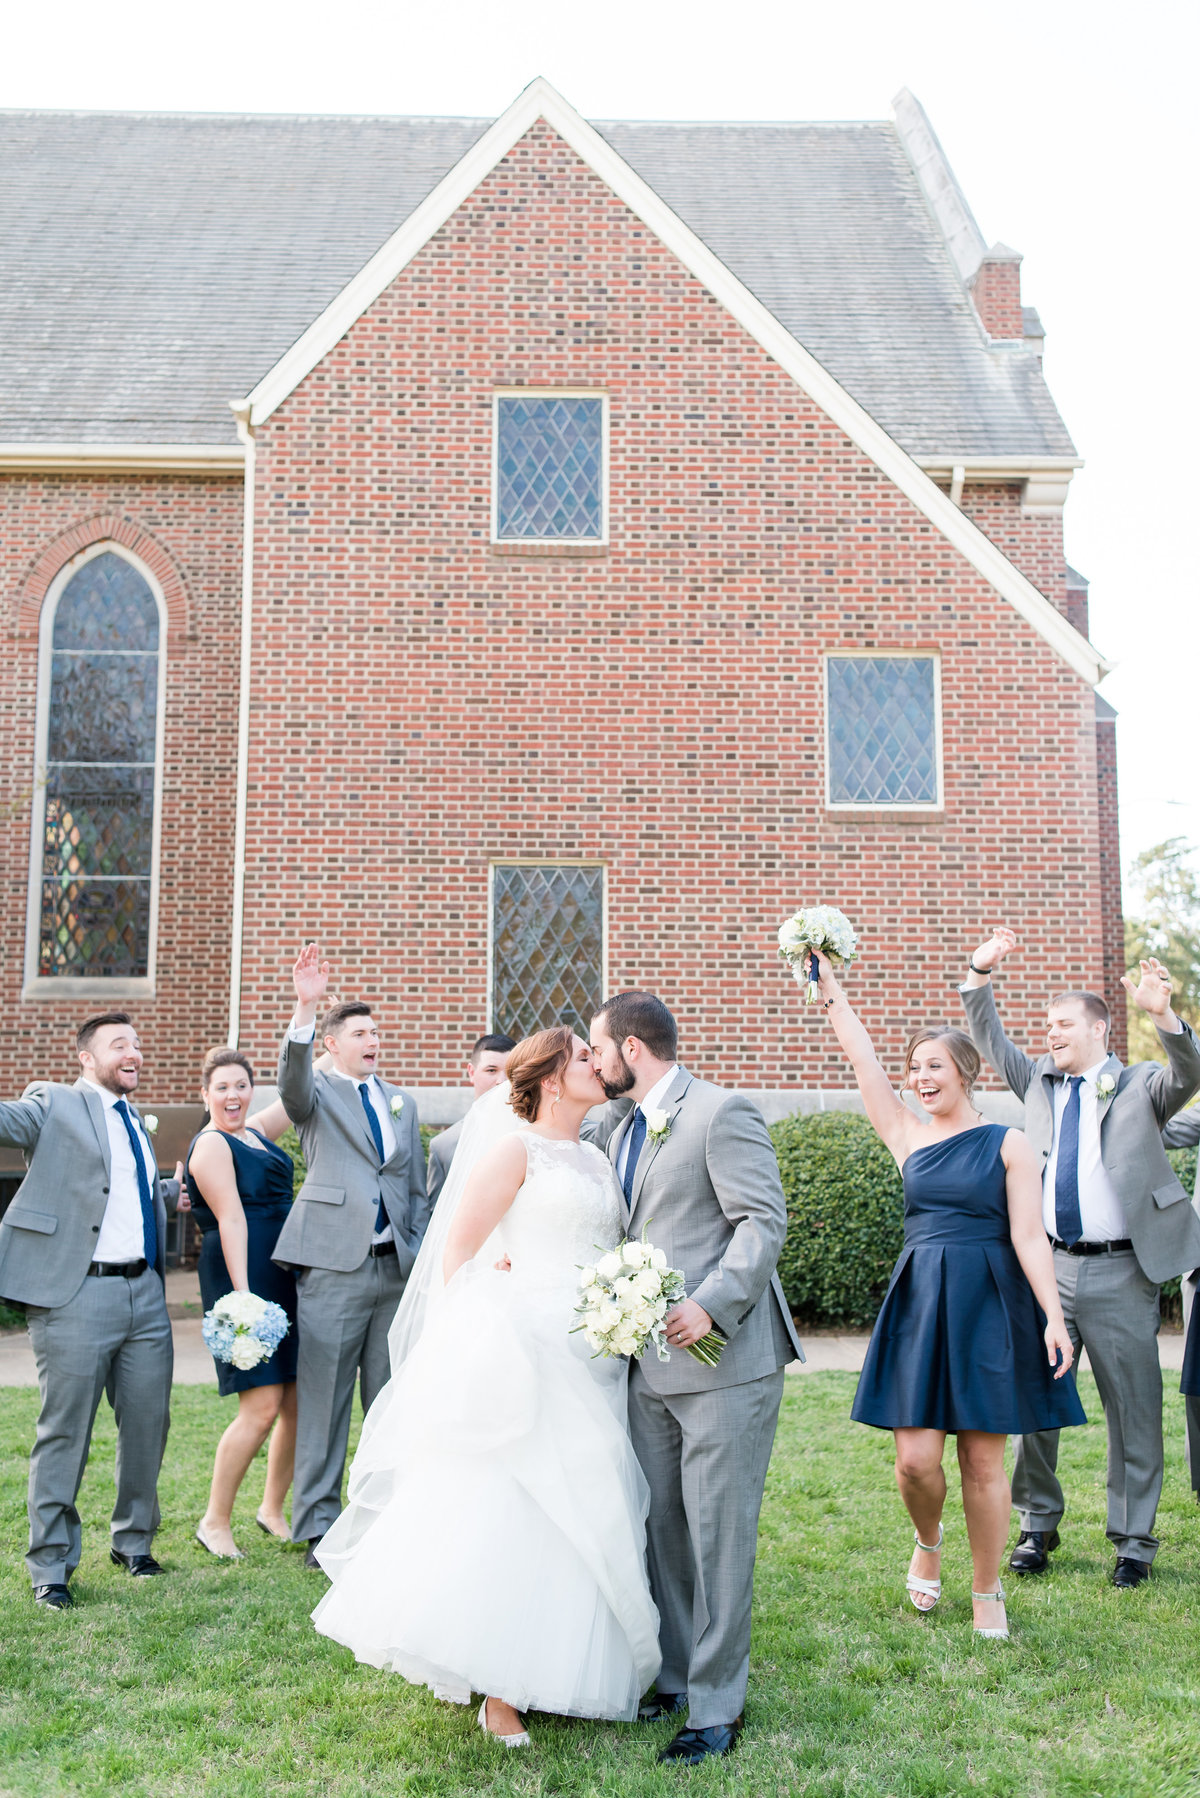 a bride with a lace dress kissing her groom wearing a gray suit holding white bridal bouquet surrounded by a bridal party cheering for them in front of a church in downtown Raleigh